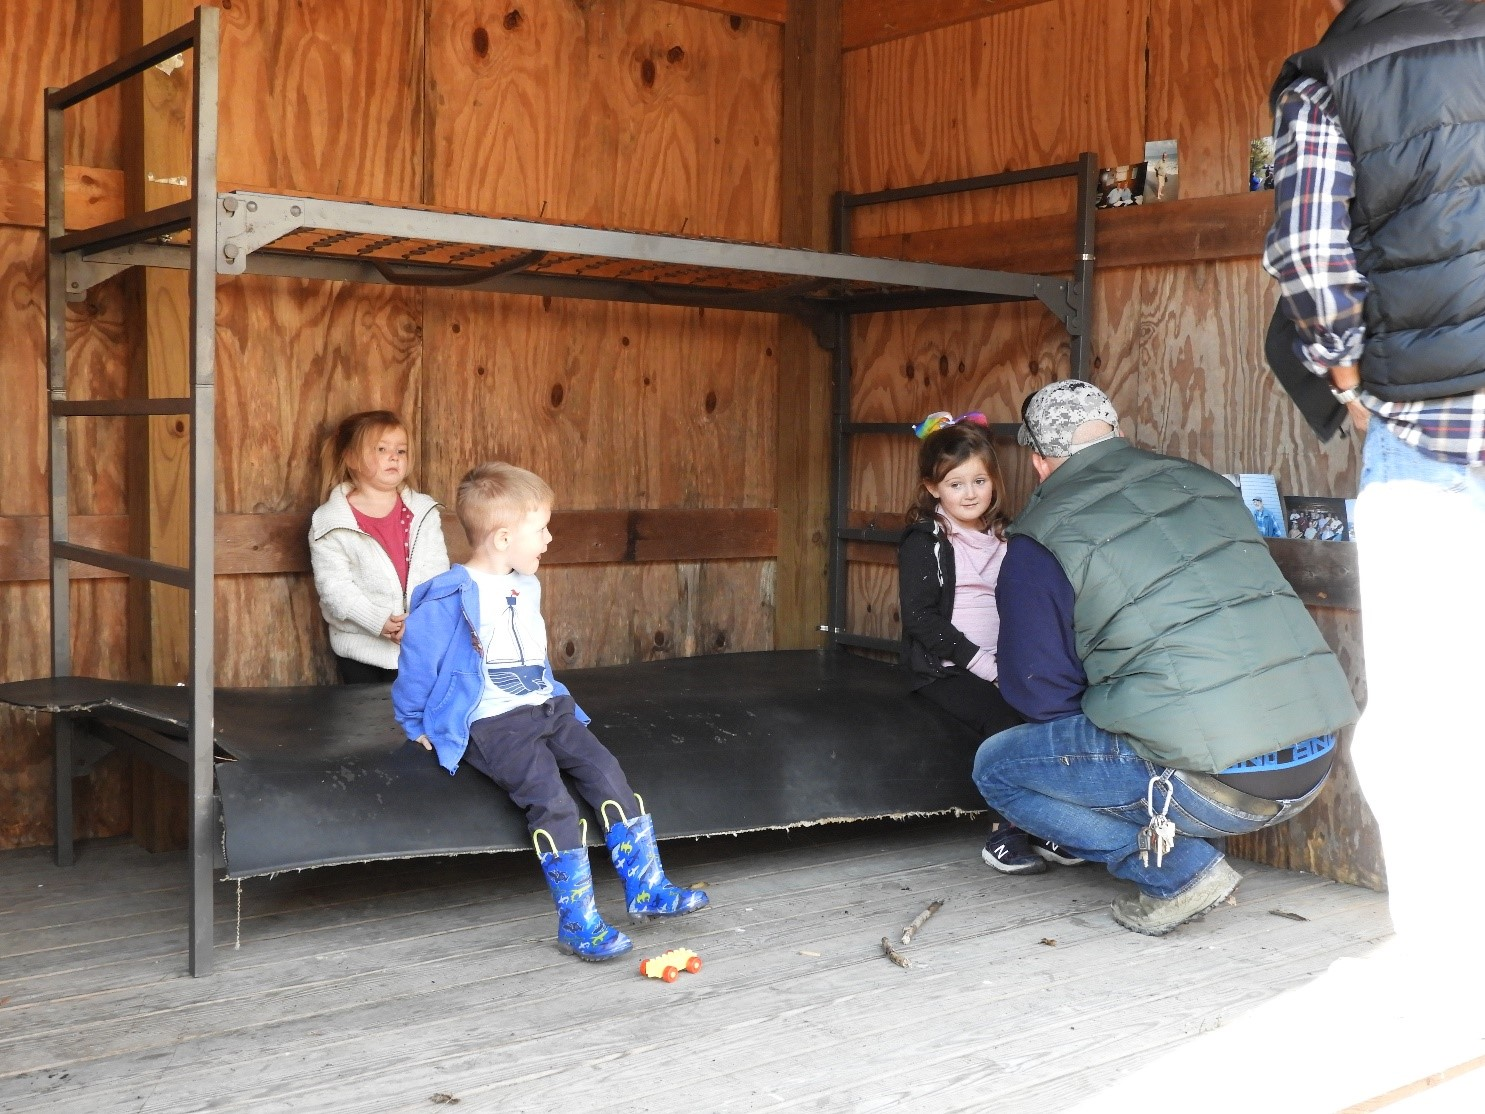 Grandchildren and Great Grandchildren try out the bunk bed donated by the Weiford family and placed in the Reger family shelter by Giles Wright and Greg Edwards.